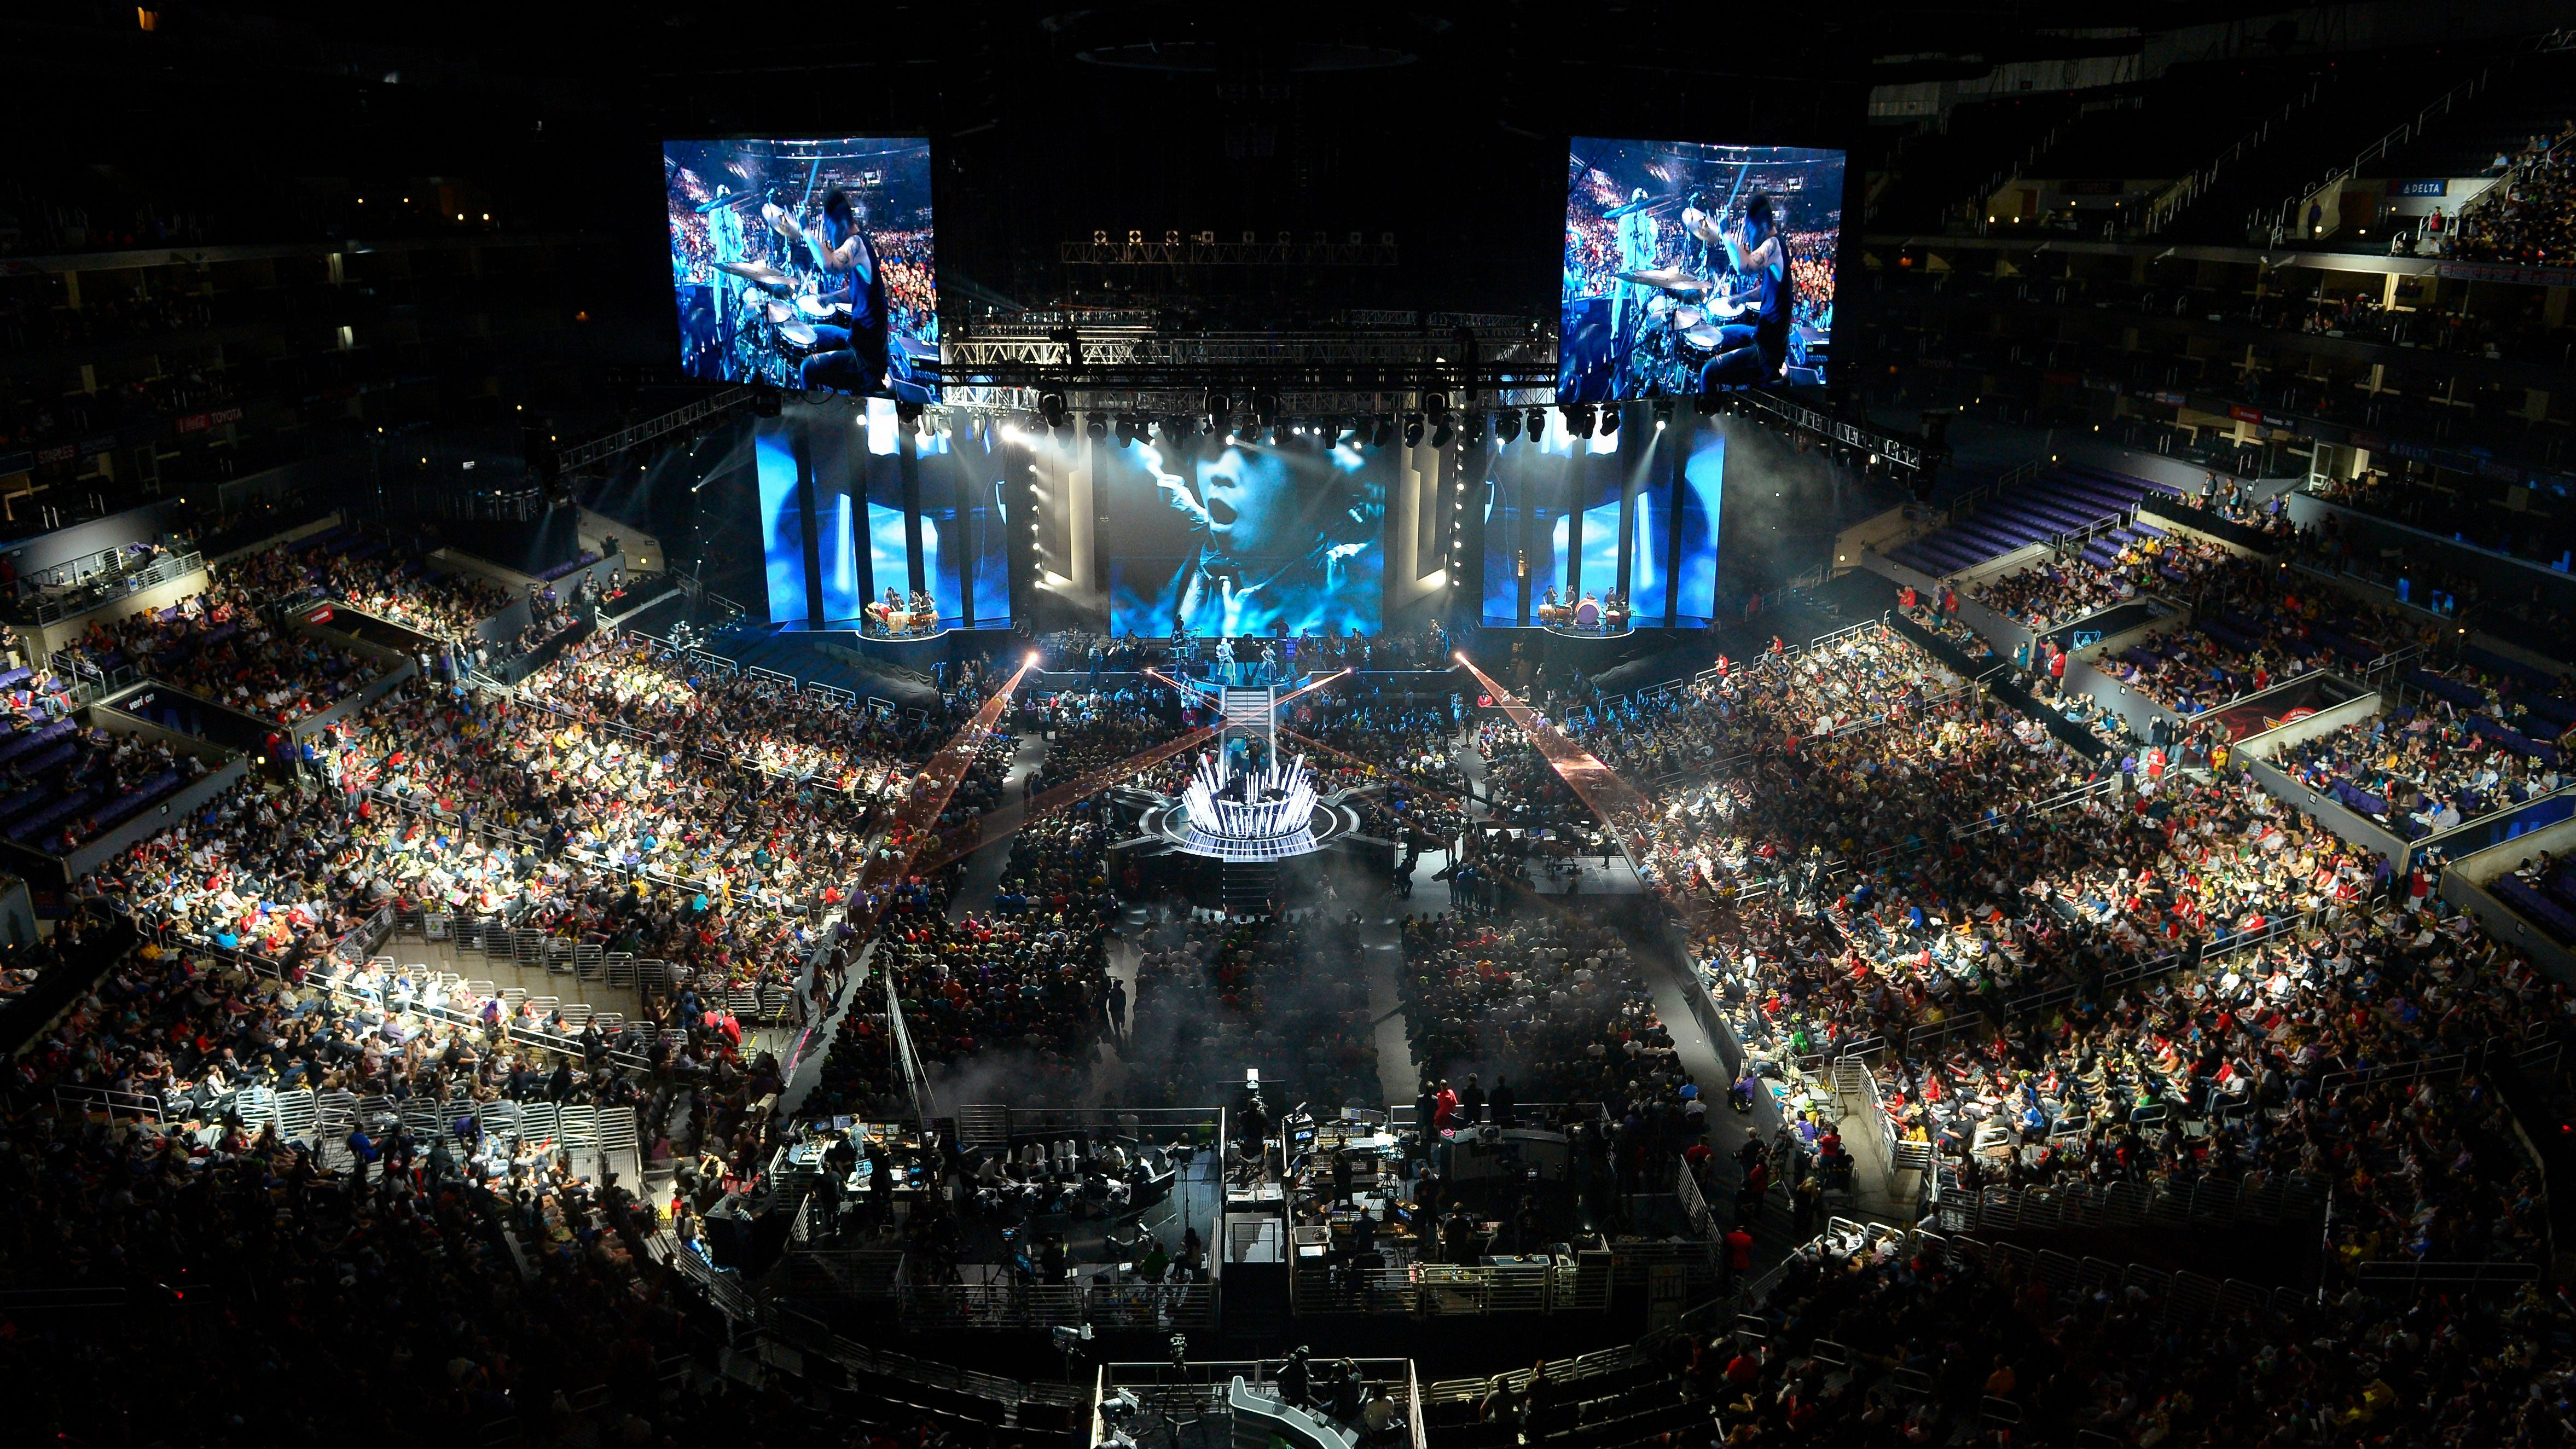 """FILE - In this Oct. 4, 2013 file photo, fans watch the opening ceremony at the League of Legends Season 3 World Championship Final between South Korea's SK Telecom T1 and China's Royal Club, in Los Angeles. With millions of gamers now regularly spectating video games online and in arenas, game developers are angling to learn a few lessons from esports and possibly create the next """"League of Legends"""" at this year's Game Developers Conference, the annual gathering of video game creators, kicking-off Monday, March 2, 2015, through Friday. A survey by GDC organizers of more than 200,000 developers found that 79 percent believe competitive gaming is now a sustainable business model. (AP Photo/Mark J. Terrill, File)"""